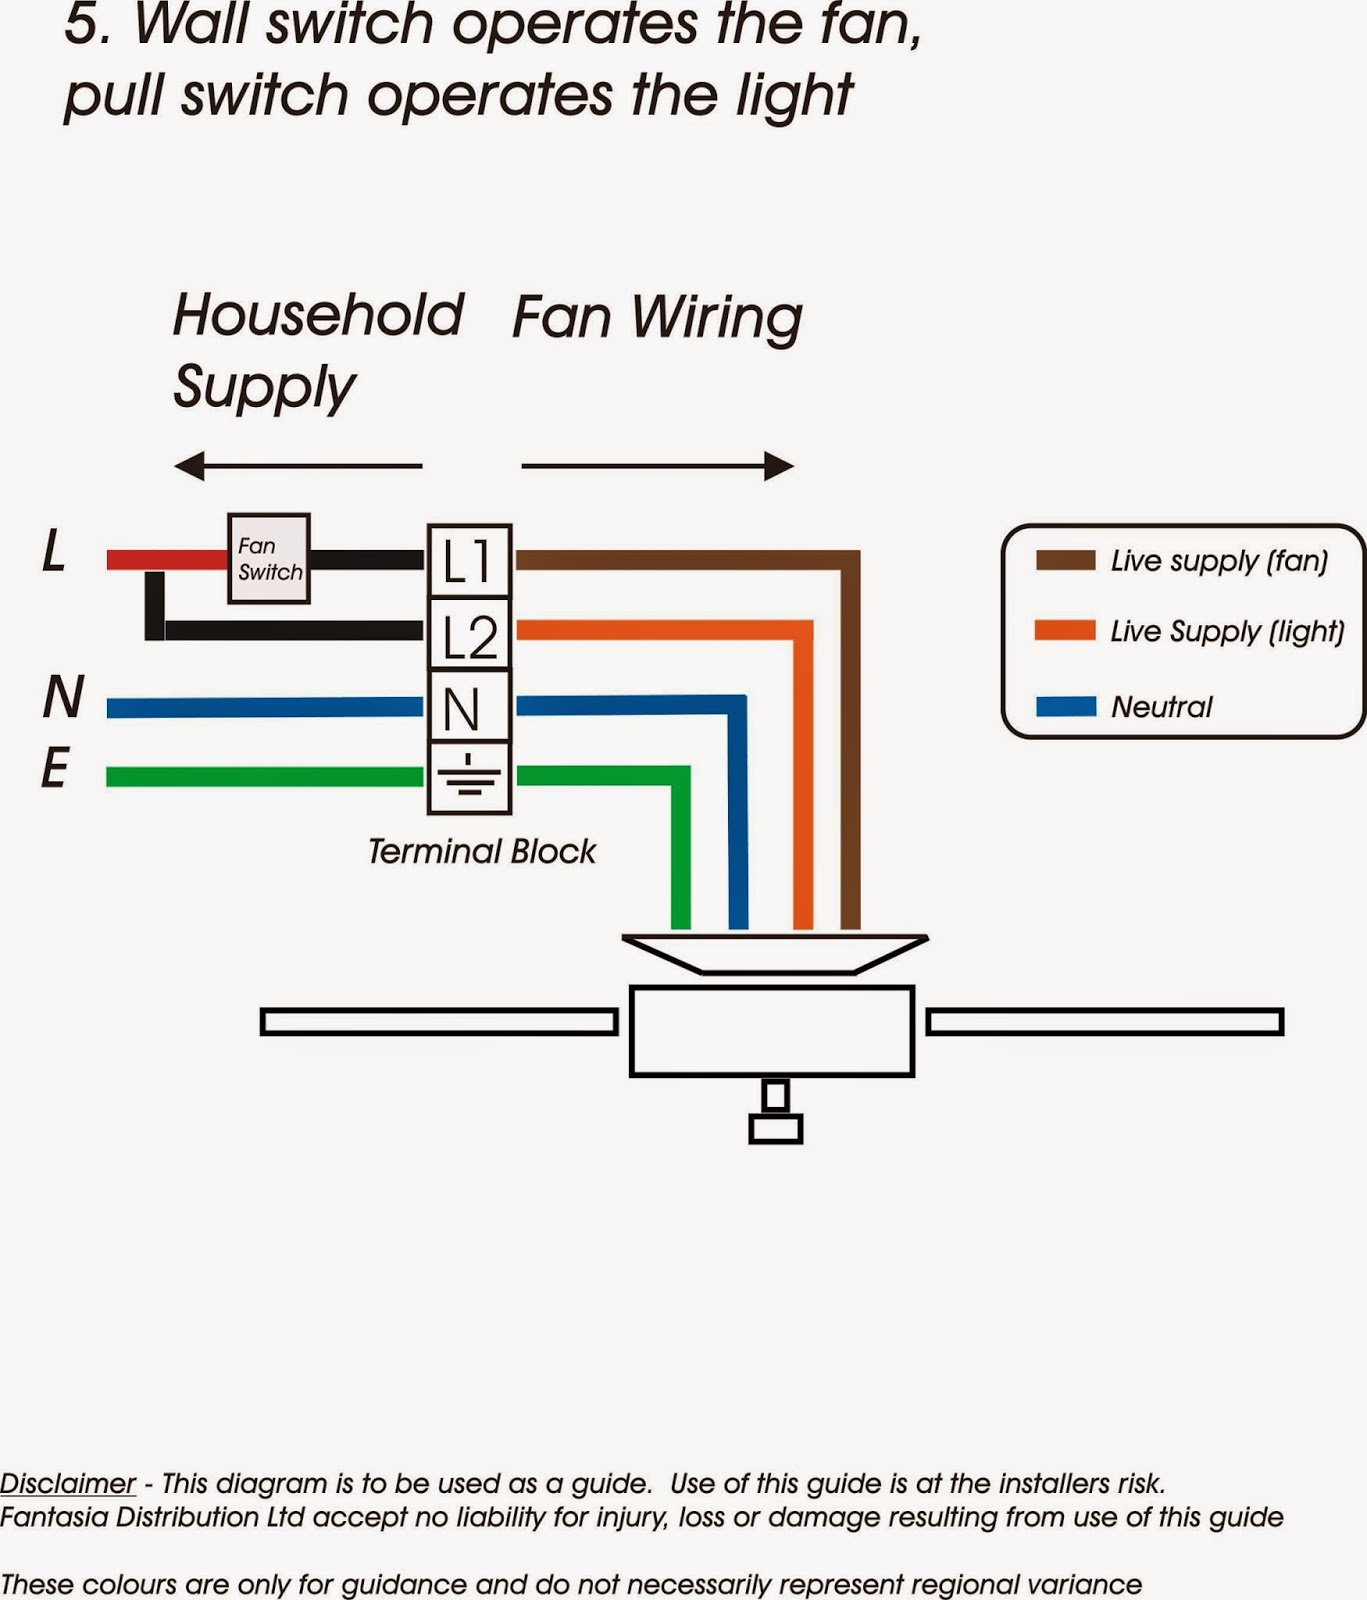 wiring diagram wall fan pull light electric work wiring diagram Arctic Cat Wiring Diagrams Online at crackthecode.co